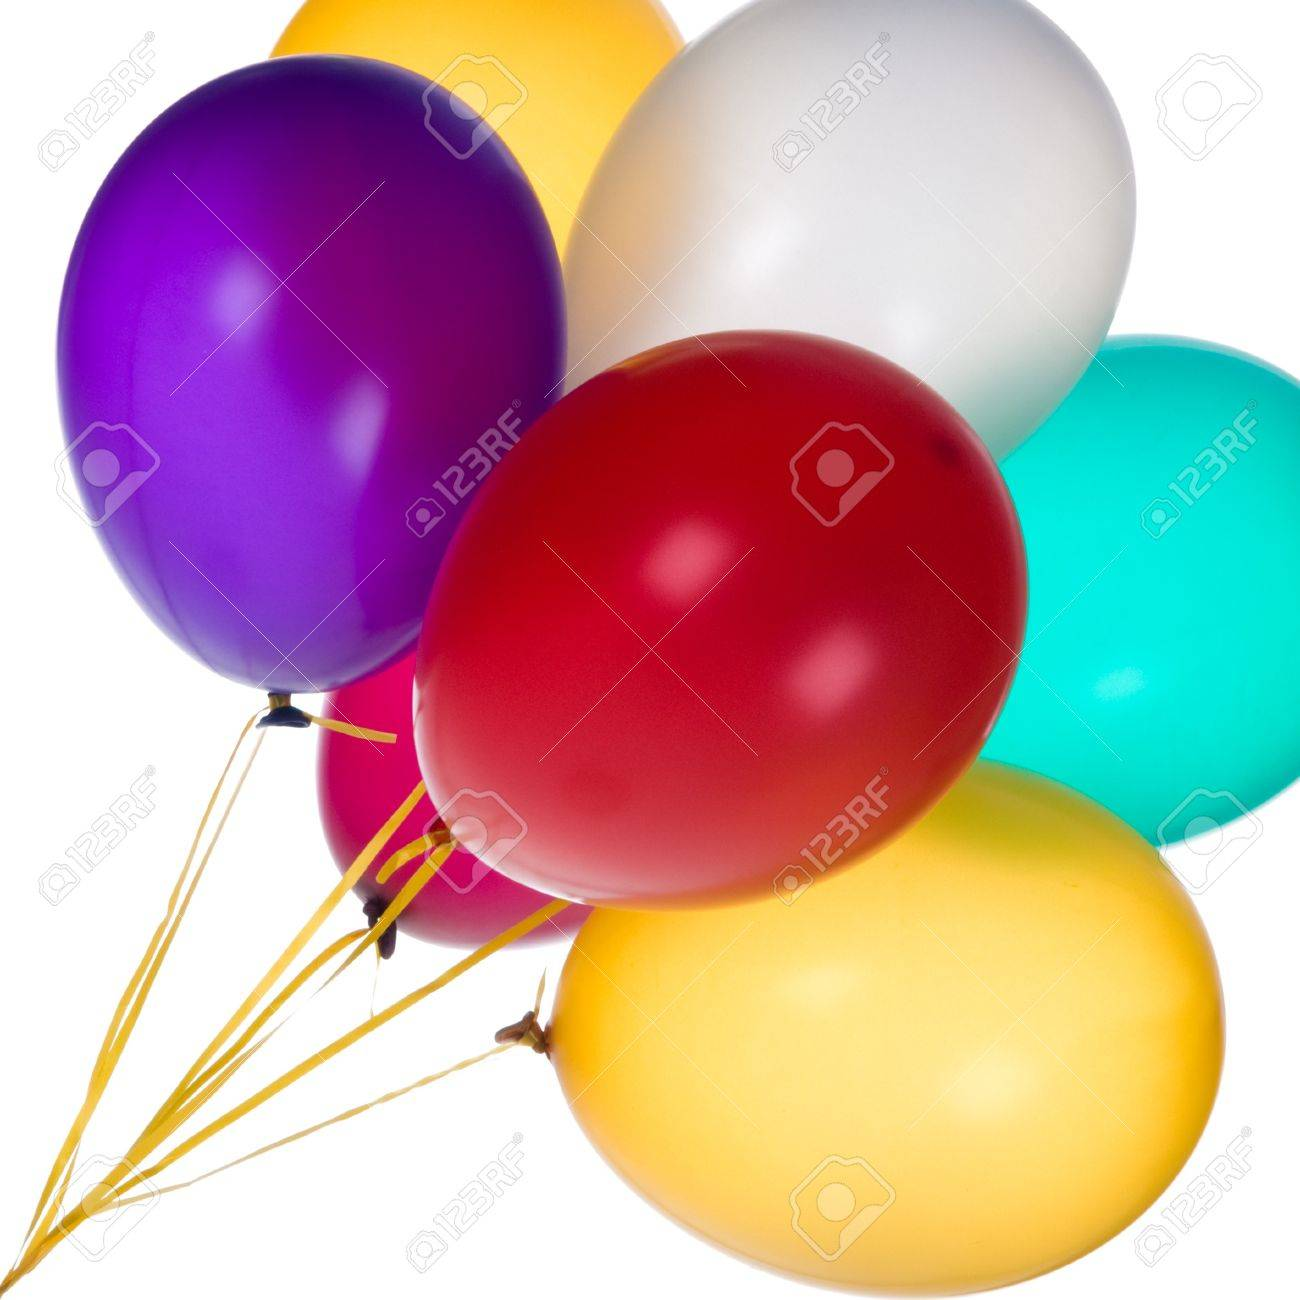 Bunch of colorful balloons against a white background. Stock Photo - 7621222